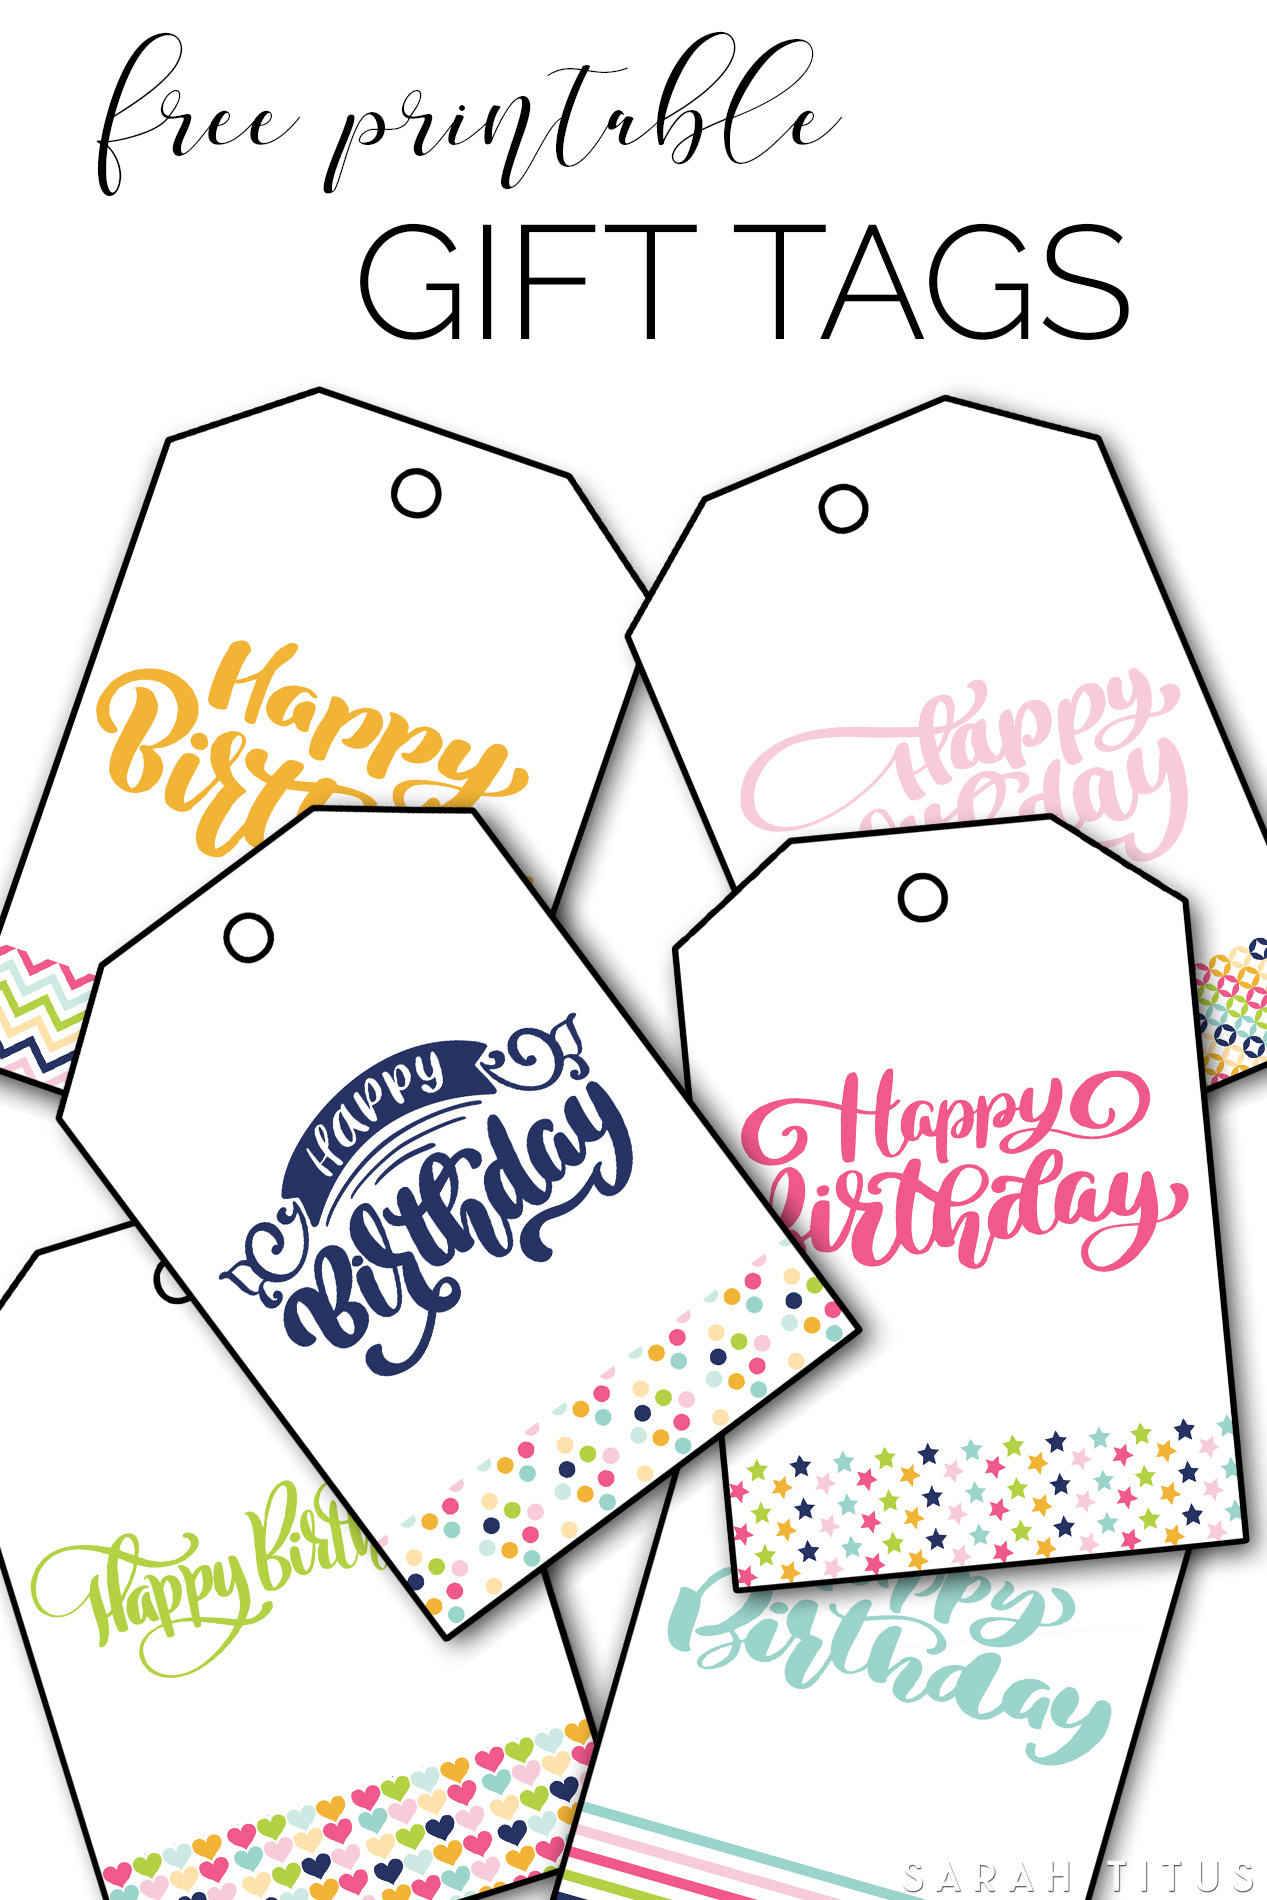 Free Printable Happy Birthday Gift Tags Sarah Titus From Homeless To 8 Figures